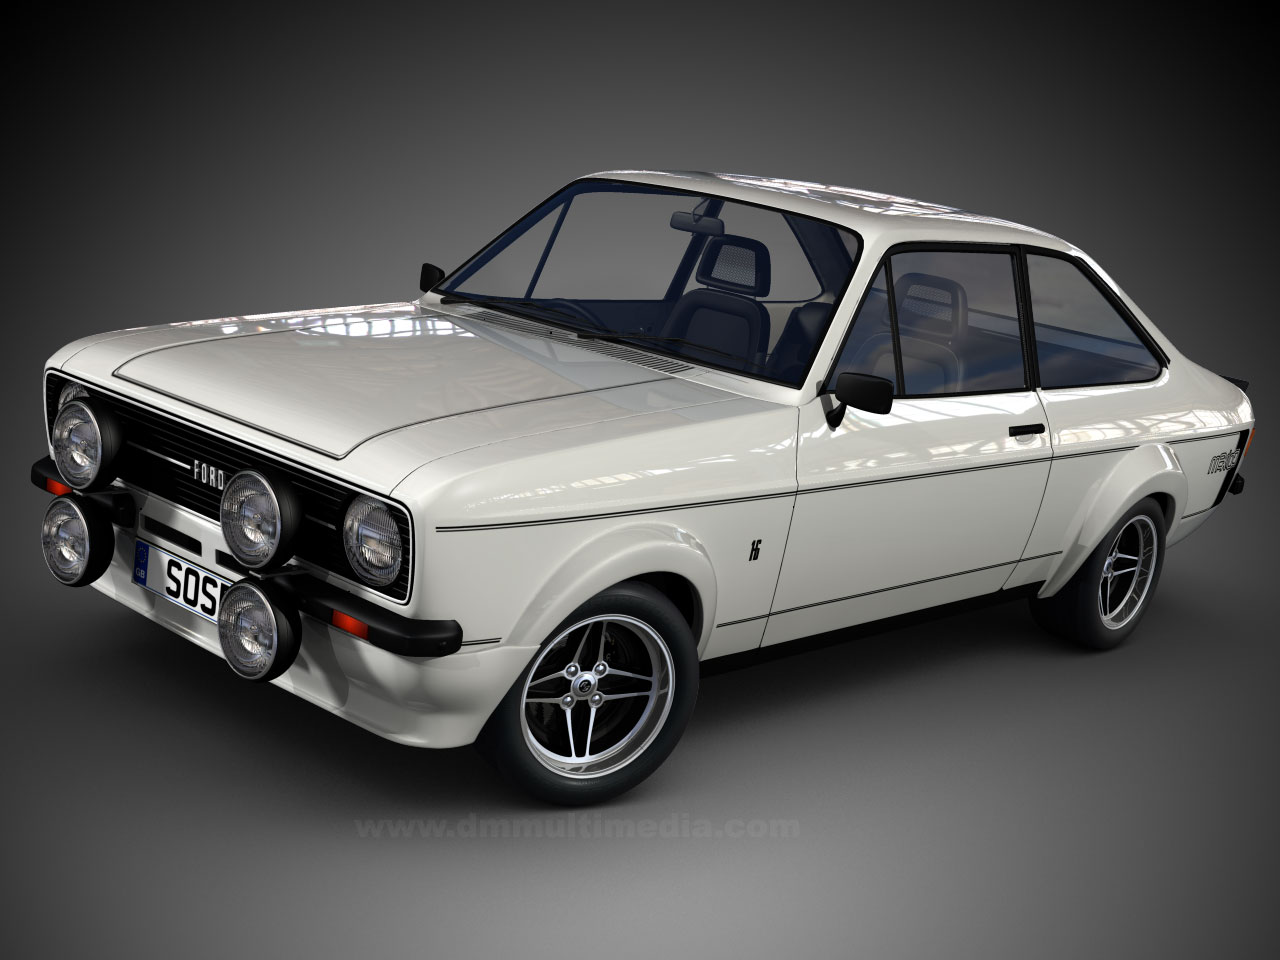 1280x960 - Ford Escort Wallpapers 21